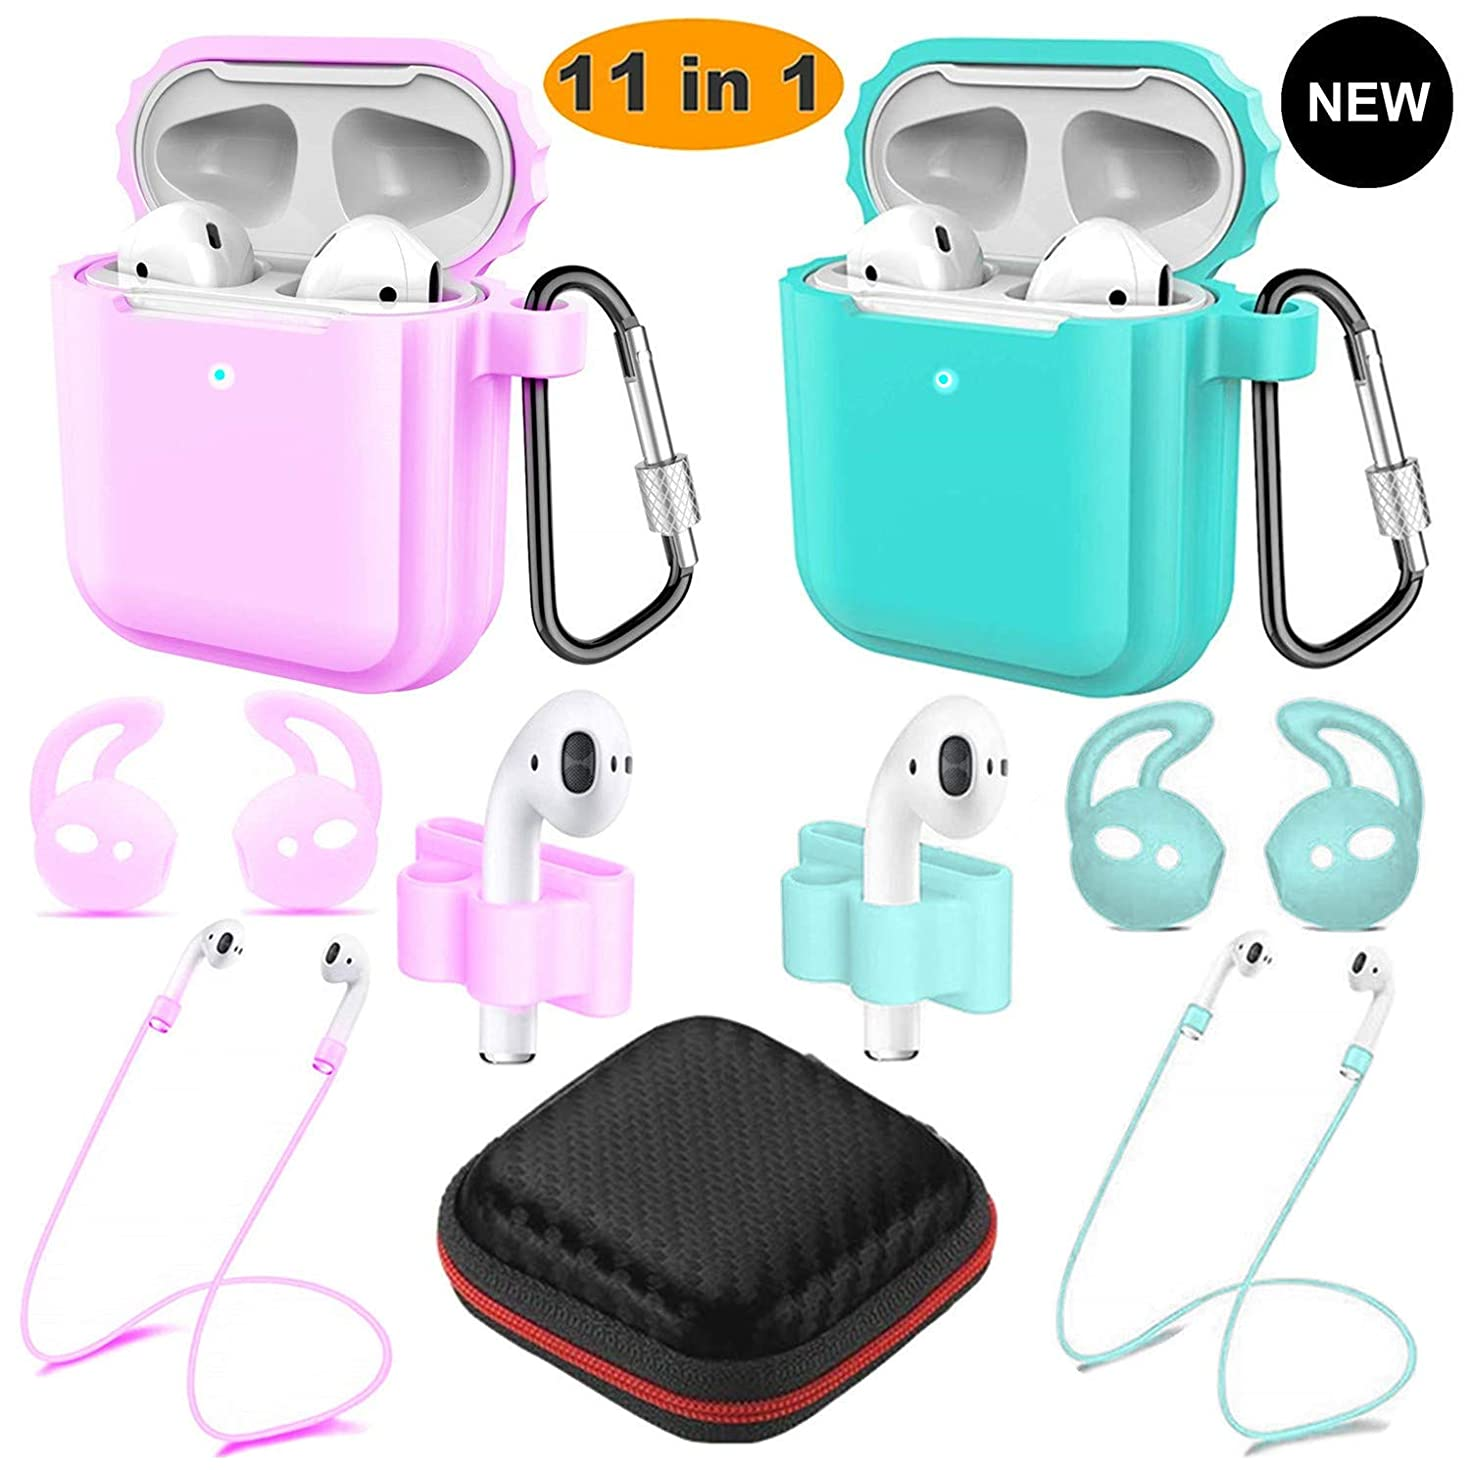 Airpods Wireless Charging Case, Airpods Accessories Kits, [Front LED Visible] 2 Pack Protective Silicone Cover Skin for Apple Airpods 2 &1Support Wireless Charging (Light Purple+Green)